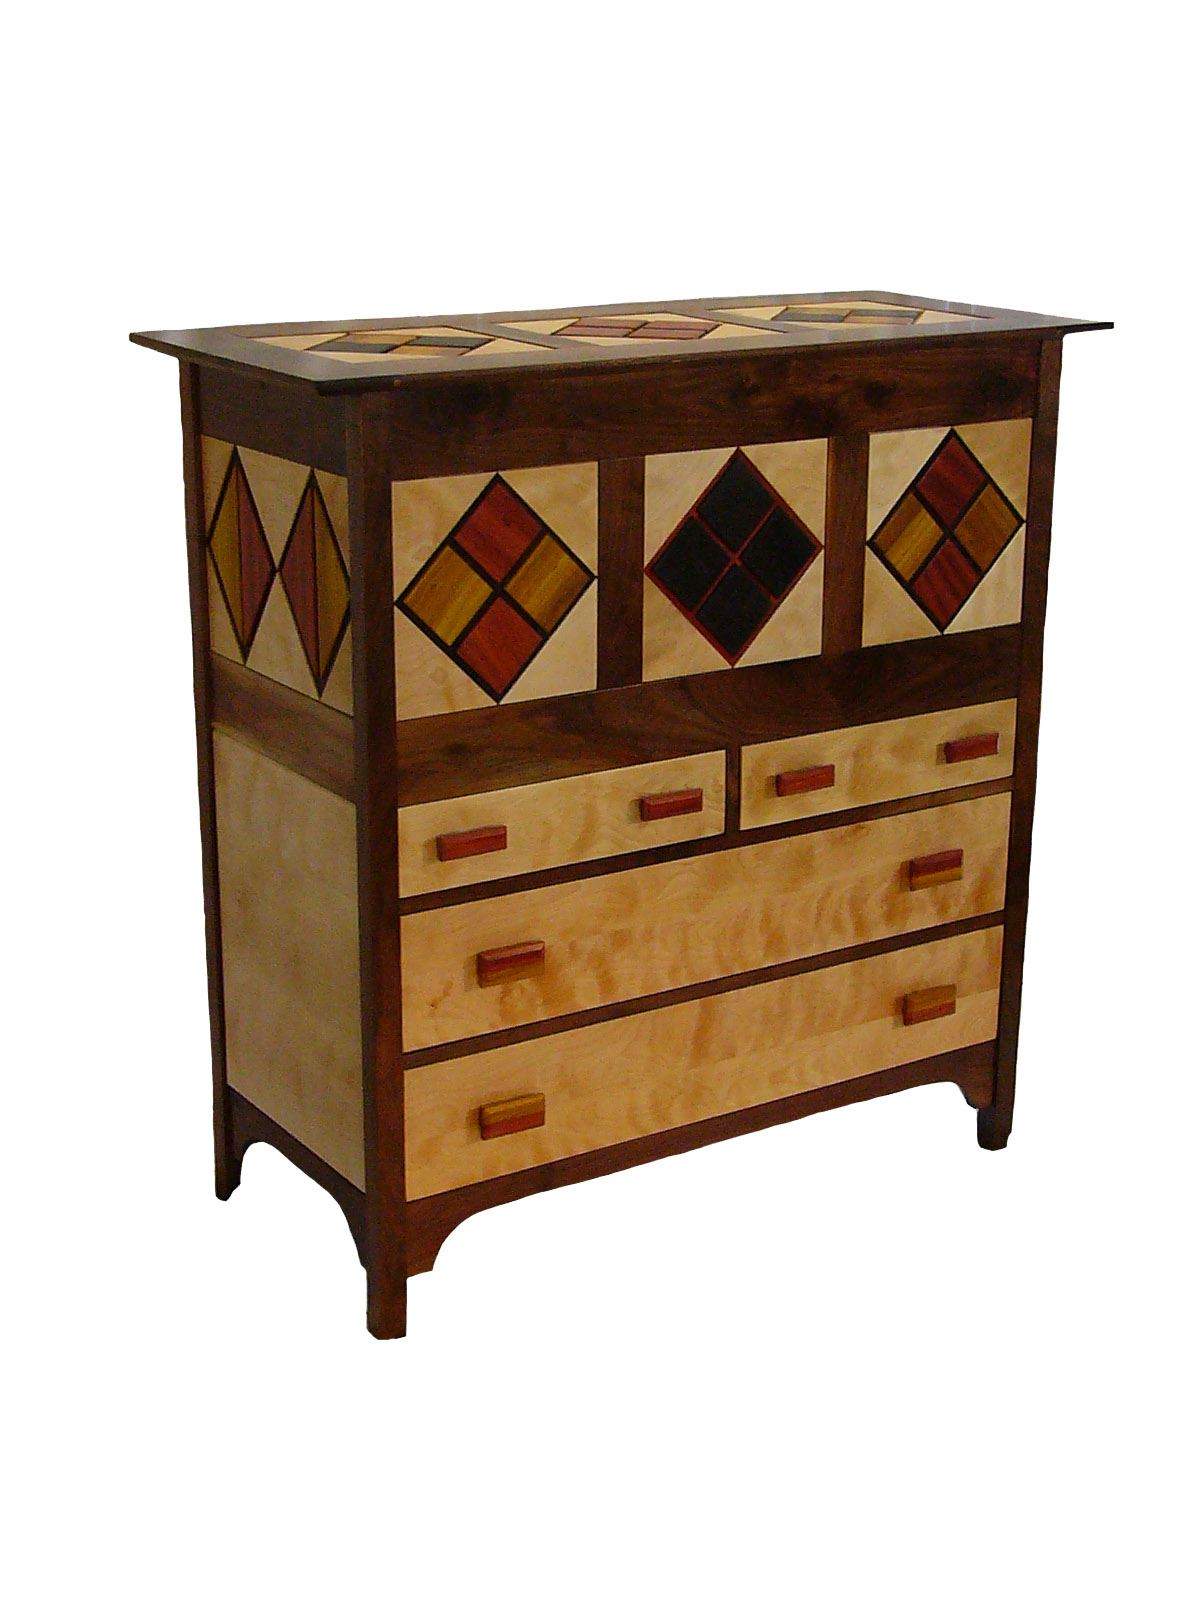 Dresser by Steven Barr (courtesy of the artist)